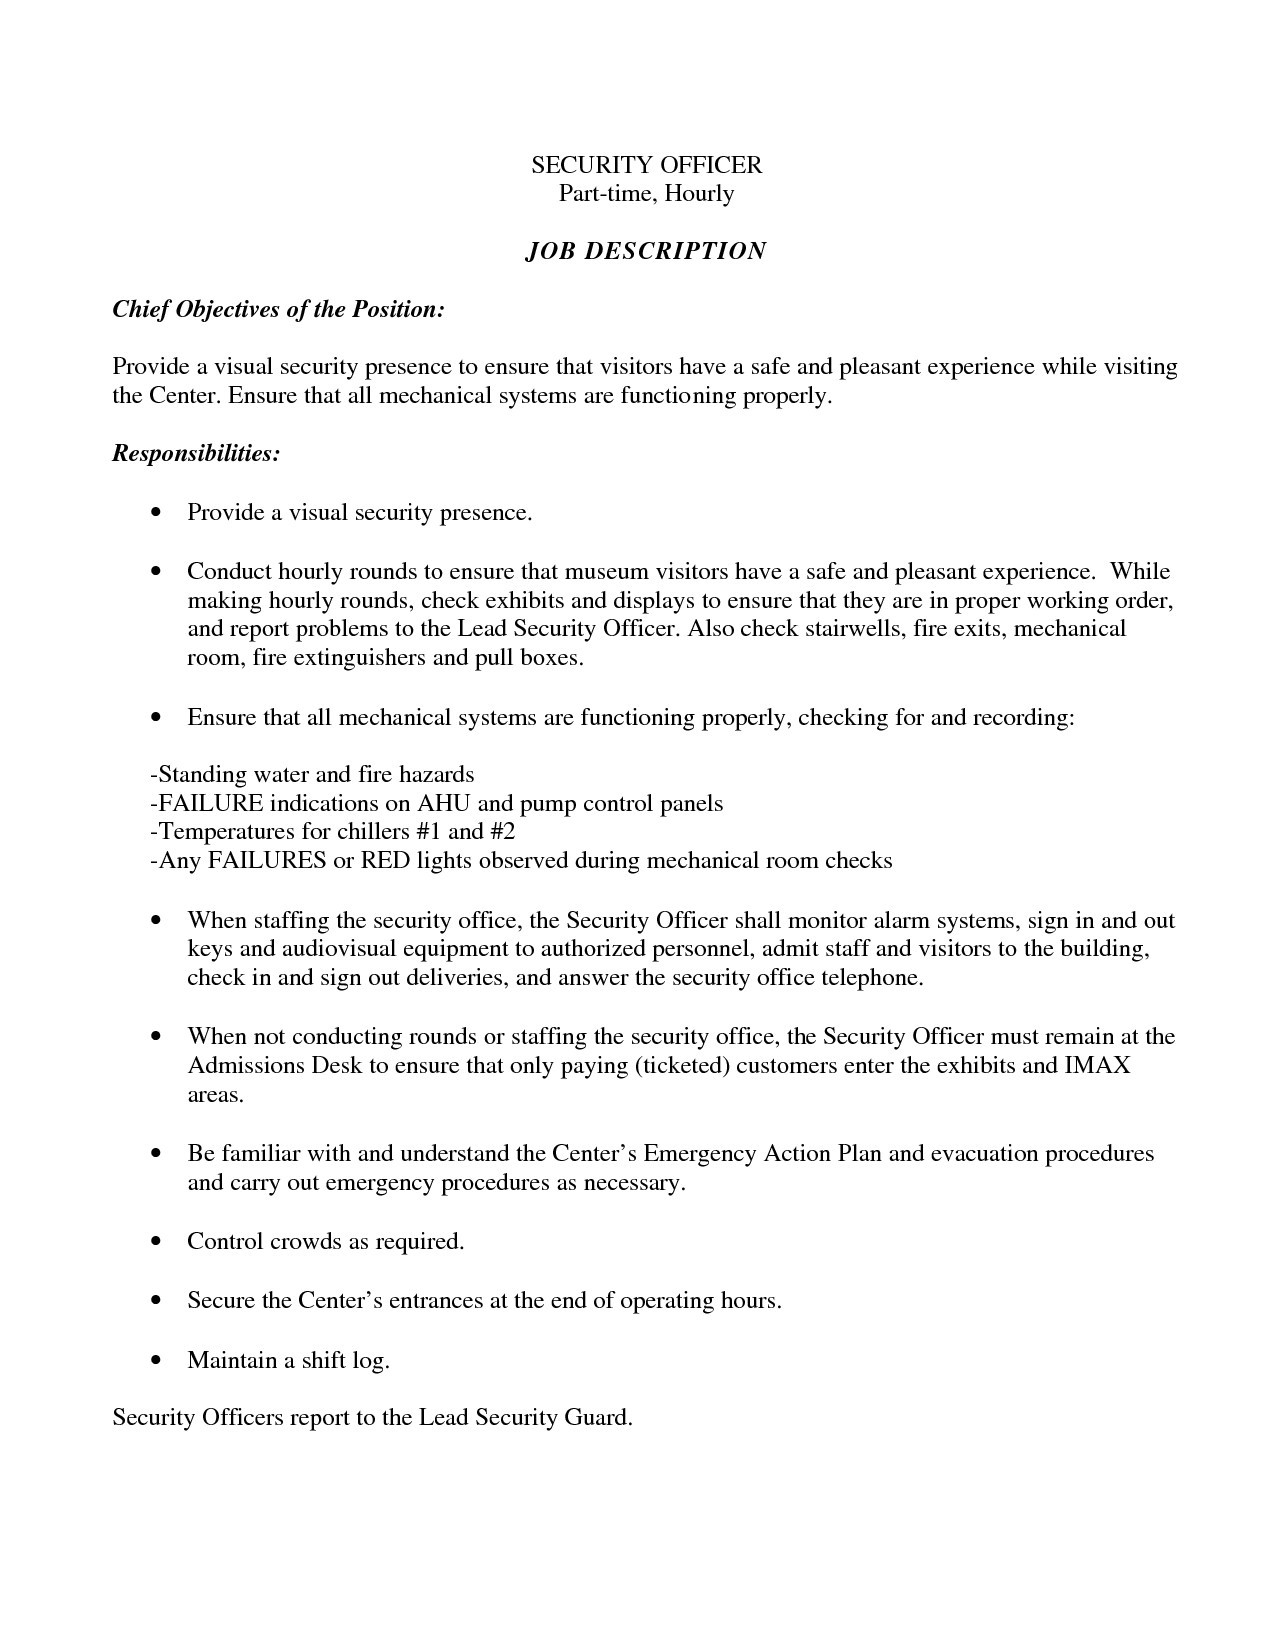 Security Guard Resume - 22 Elegant Security Ficer Resume